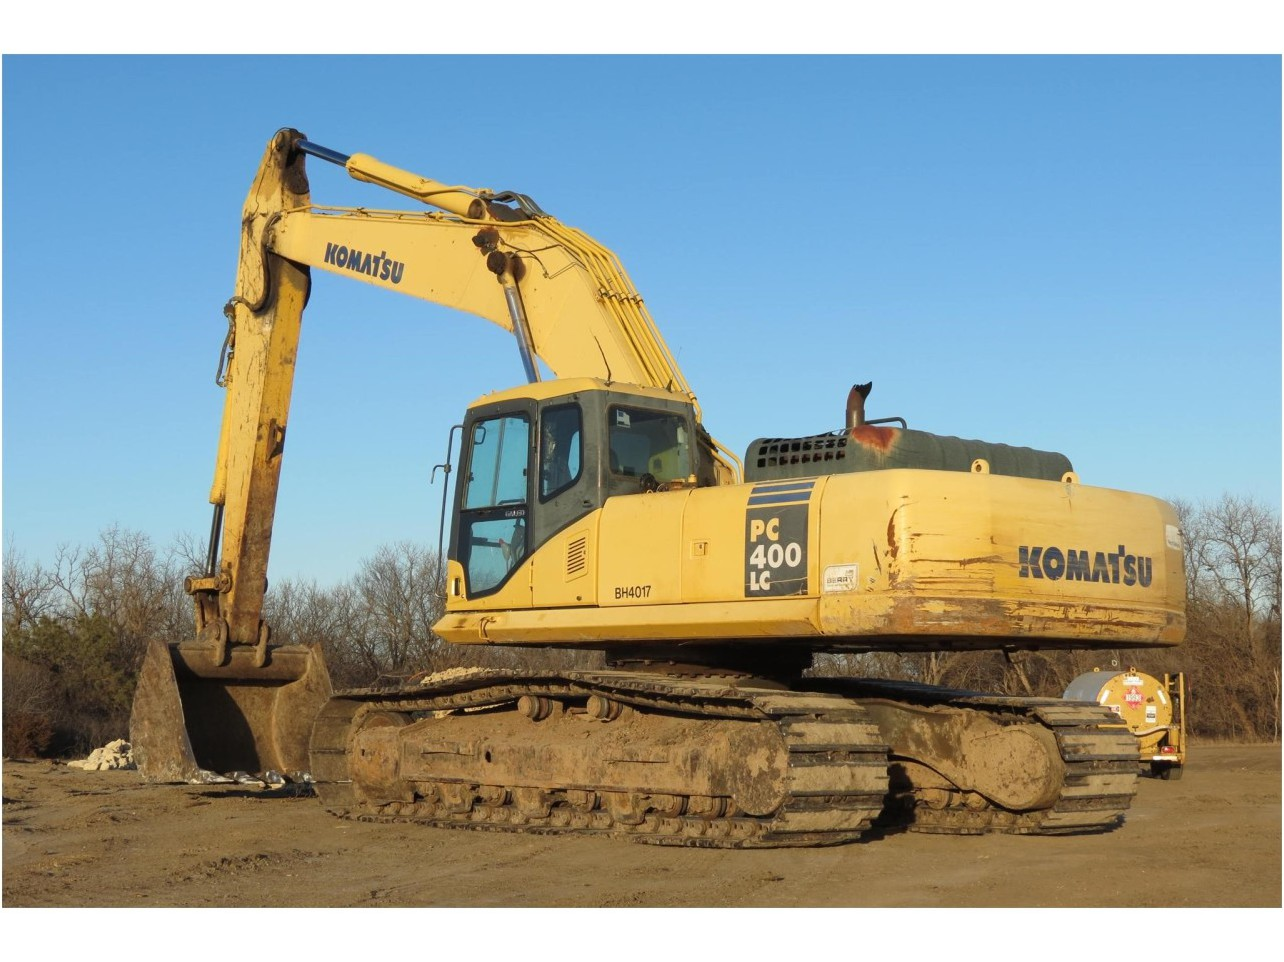 Komatsu Excavator PC400-7 PC400LC-7 Master Shop Service Manual Download -  Komatsu Service Manual Online Download